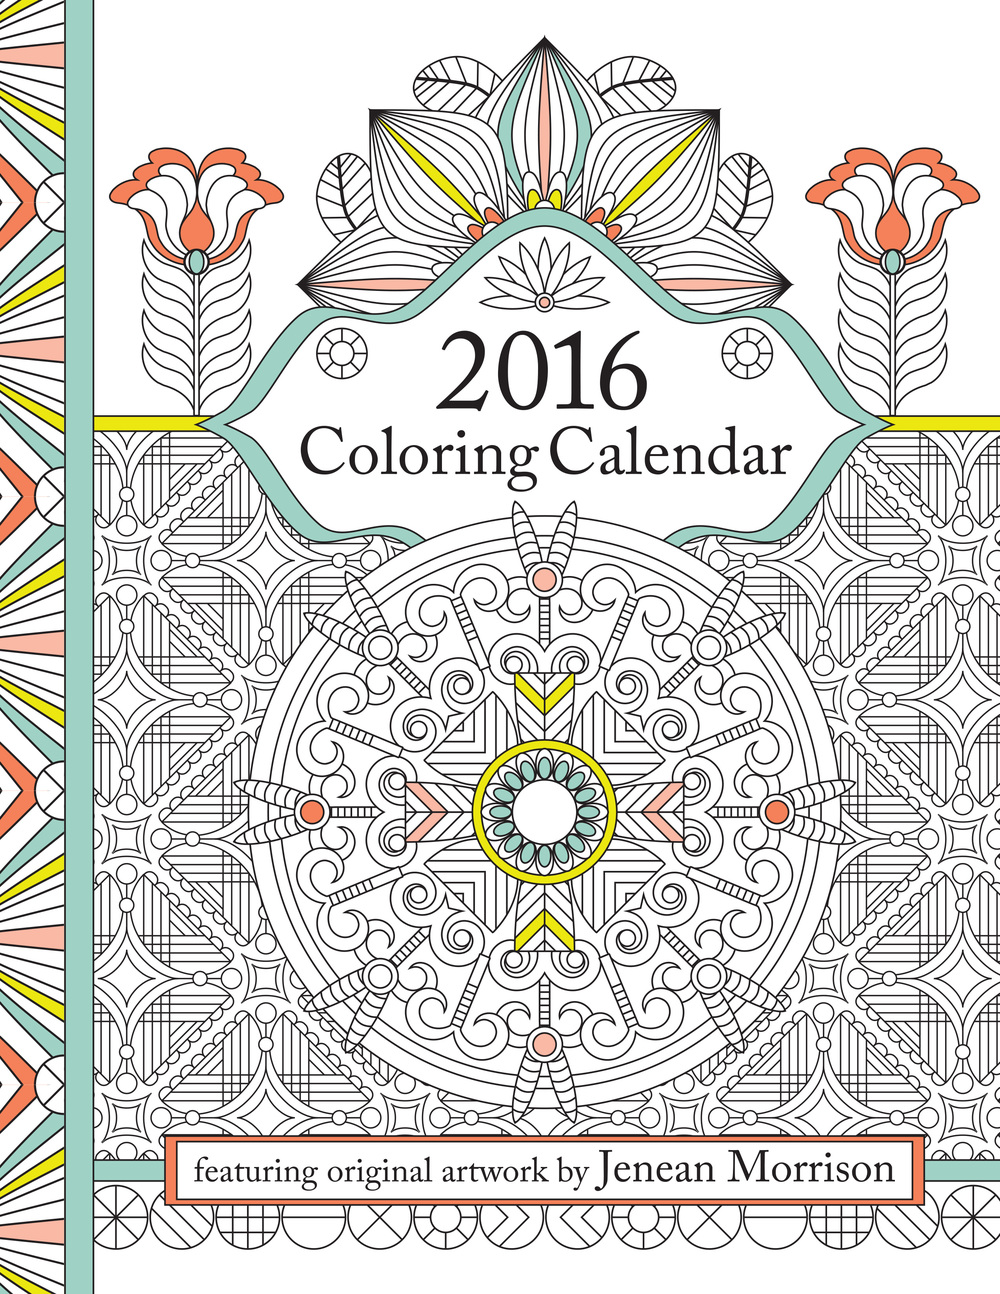 coloring calendars sector pages - photo#35